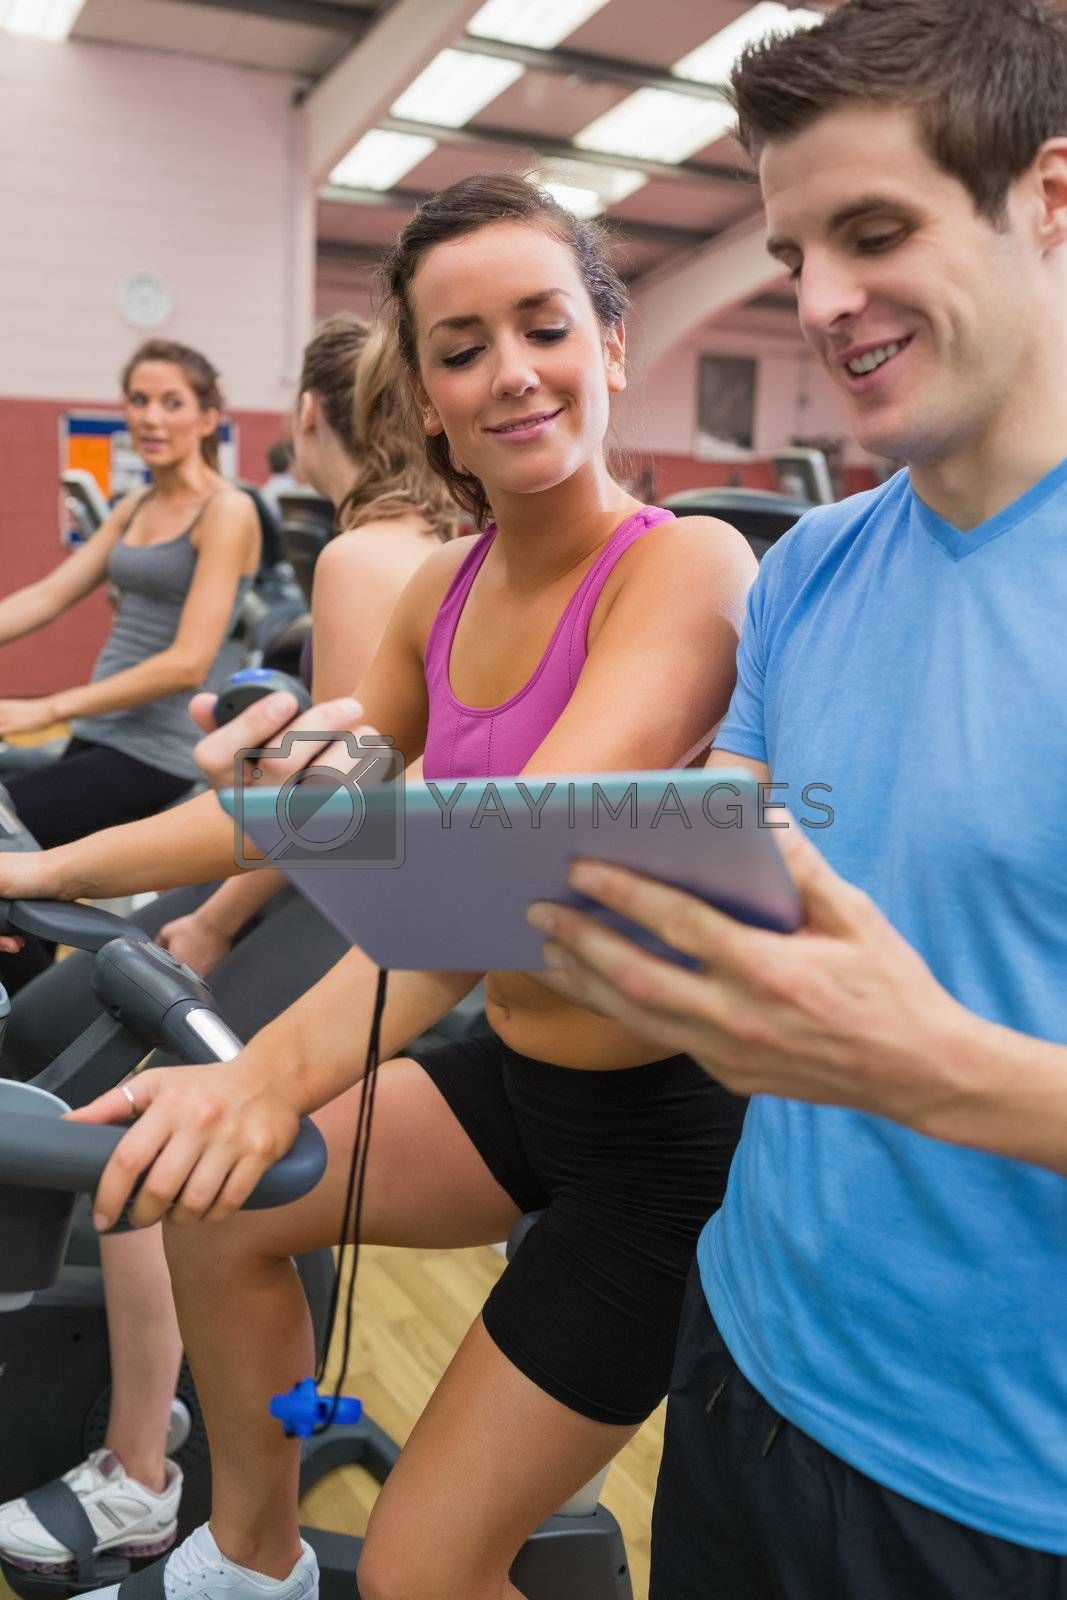 People chatting in gym on exercise bicycles